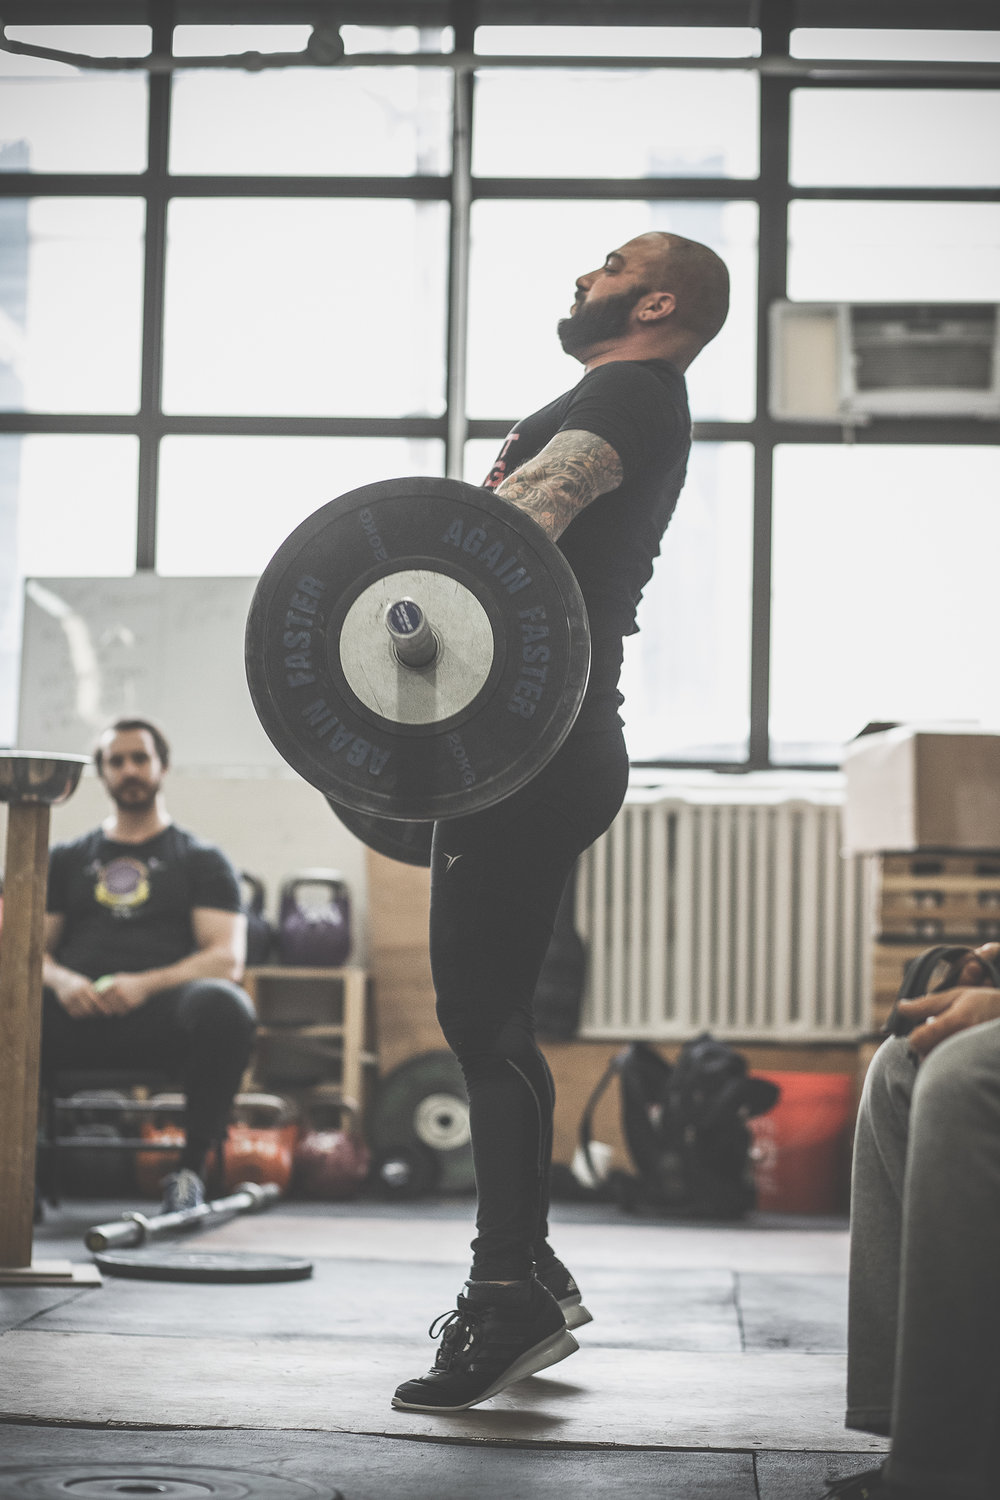 james-wright-weightlifting-coach-30.jpg